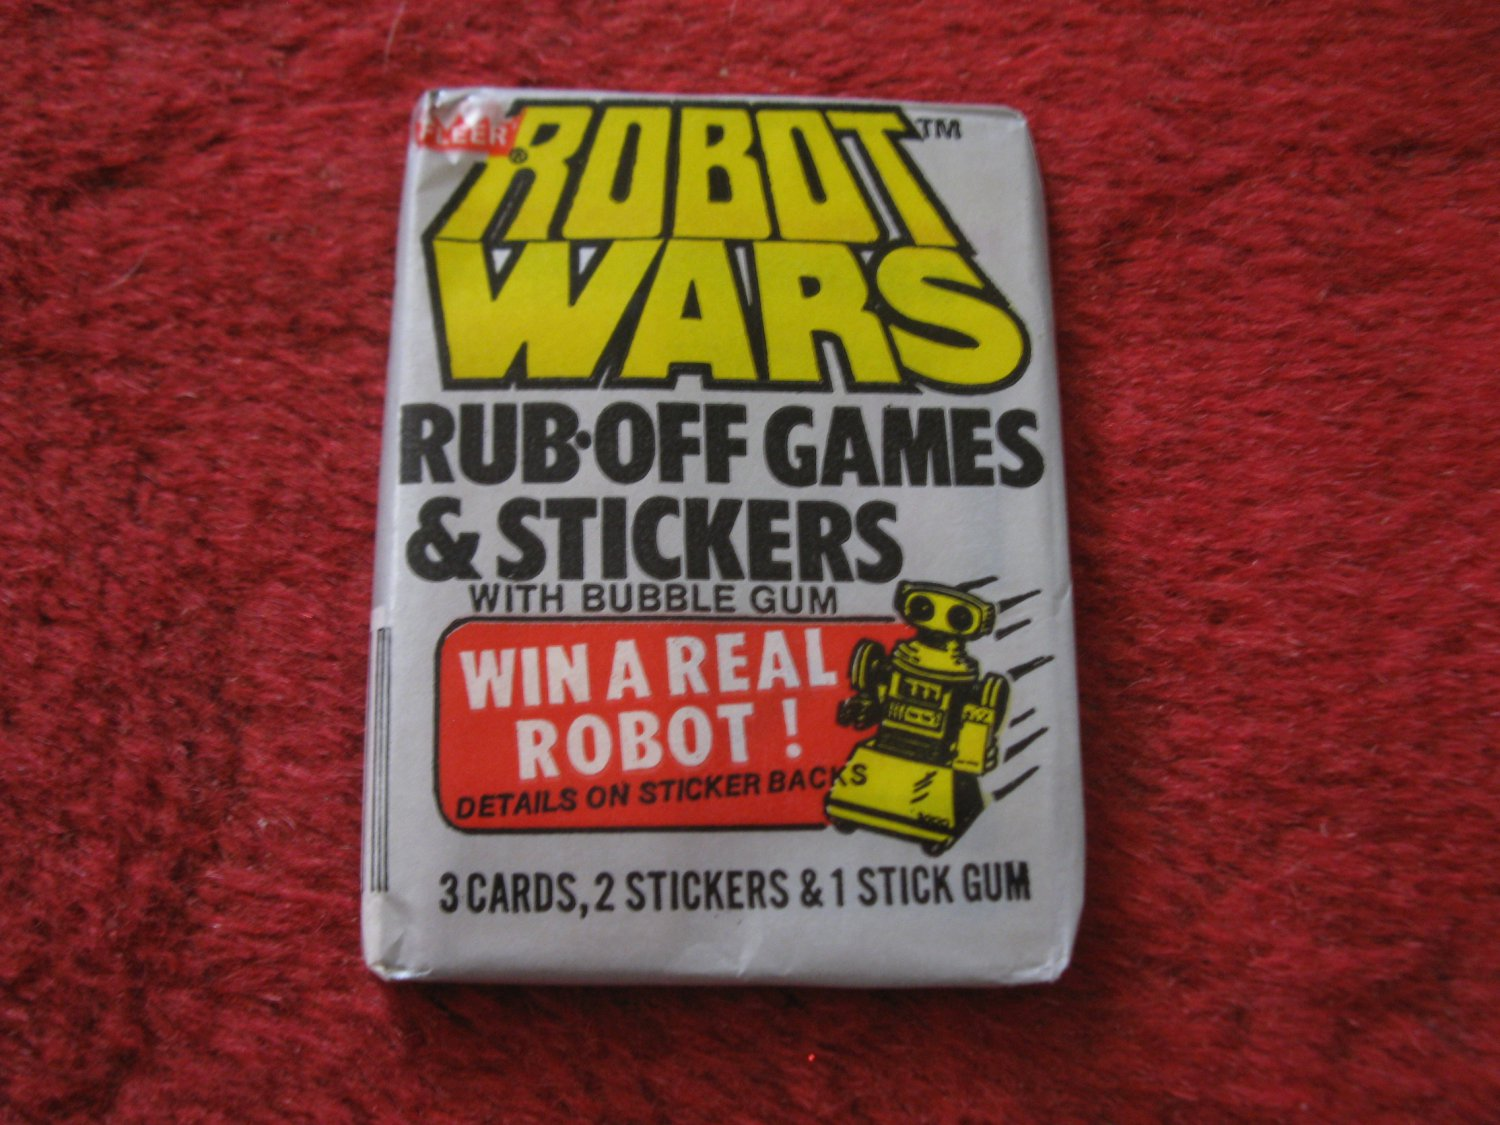 1985 Fleer Robot Wars Wax Pack of Stickers & Rub-Off game cards- Factory Sealed, Never Opened